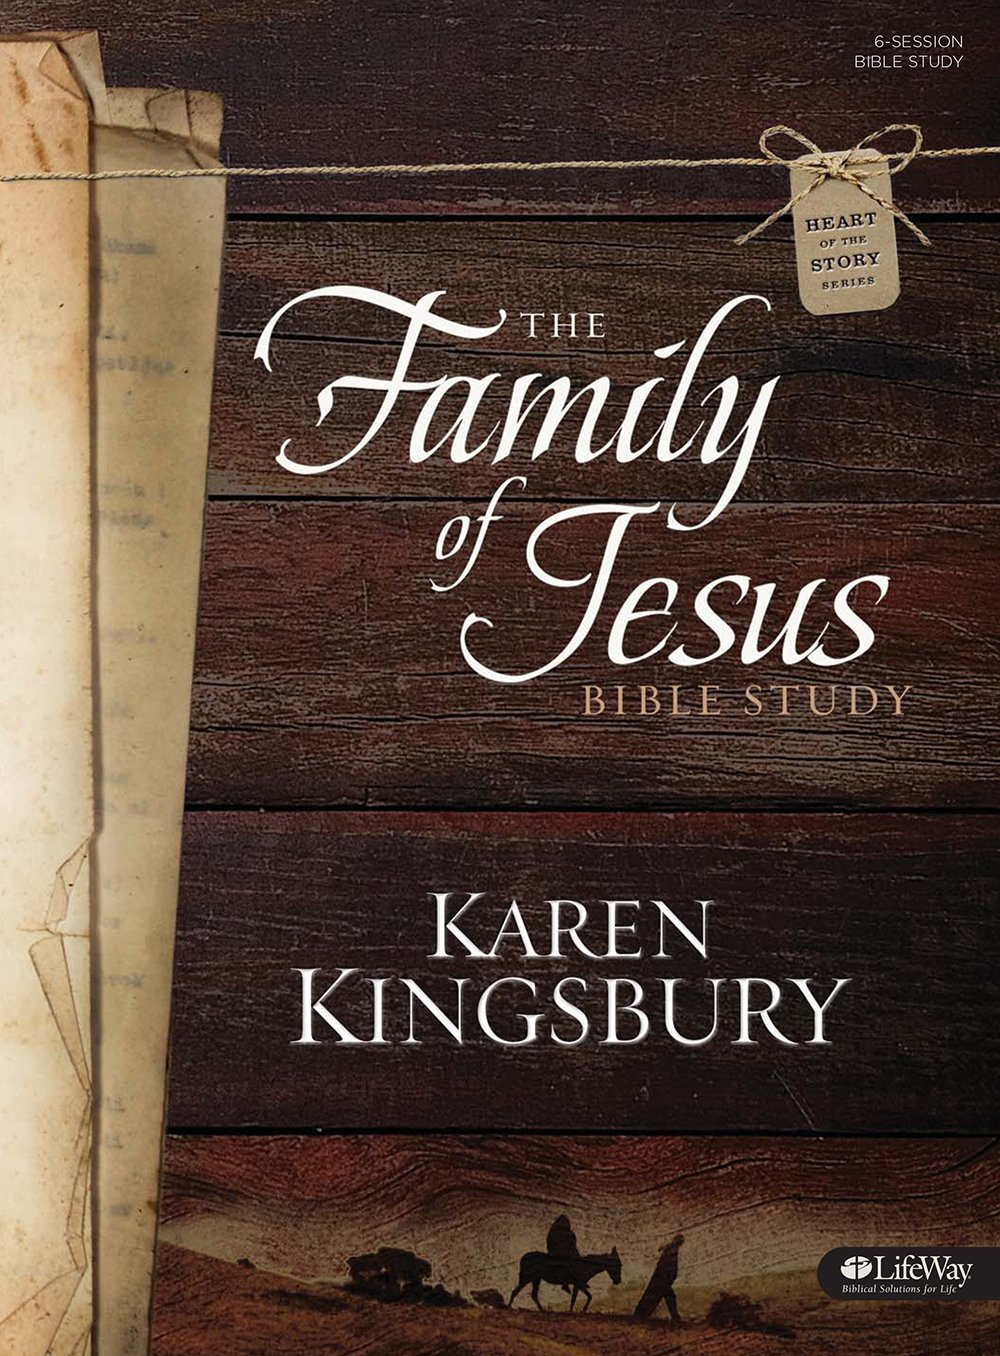 the family of jesus bible study book heart of the story karen